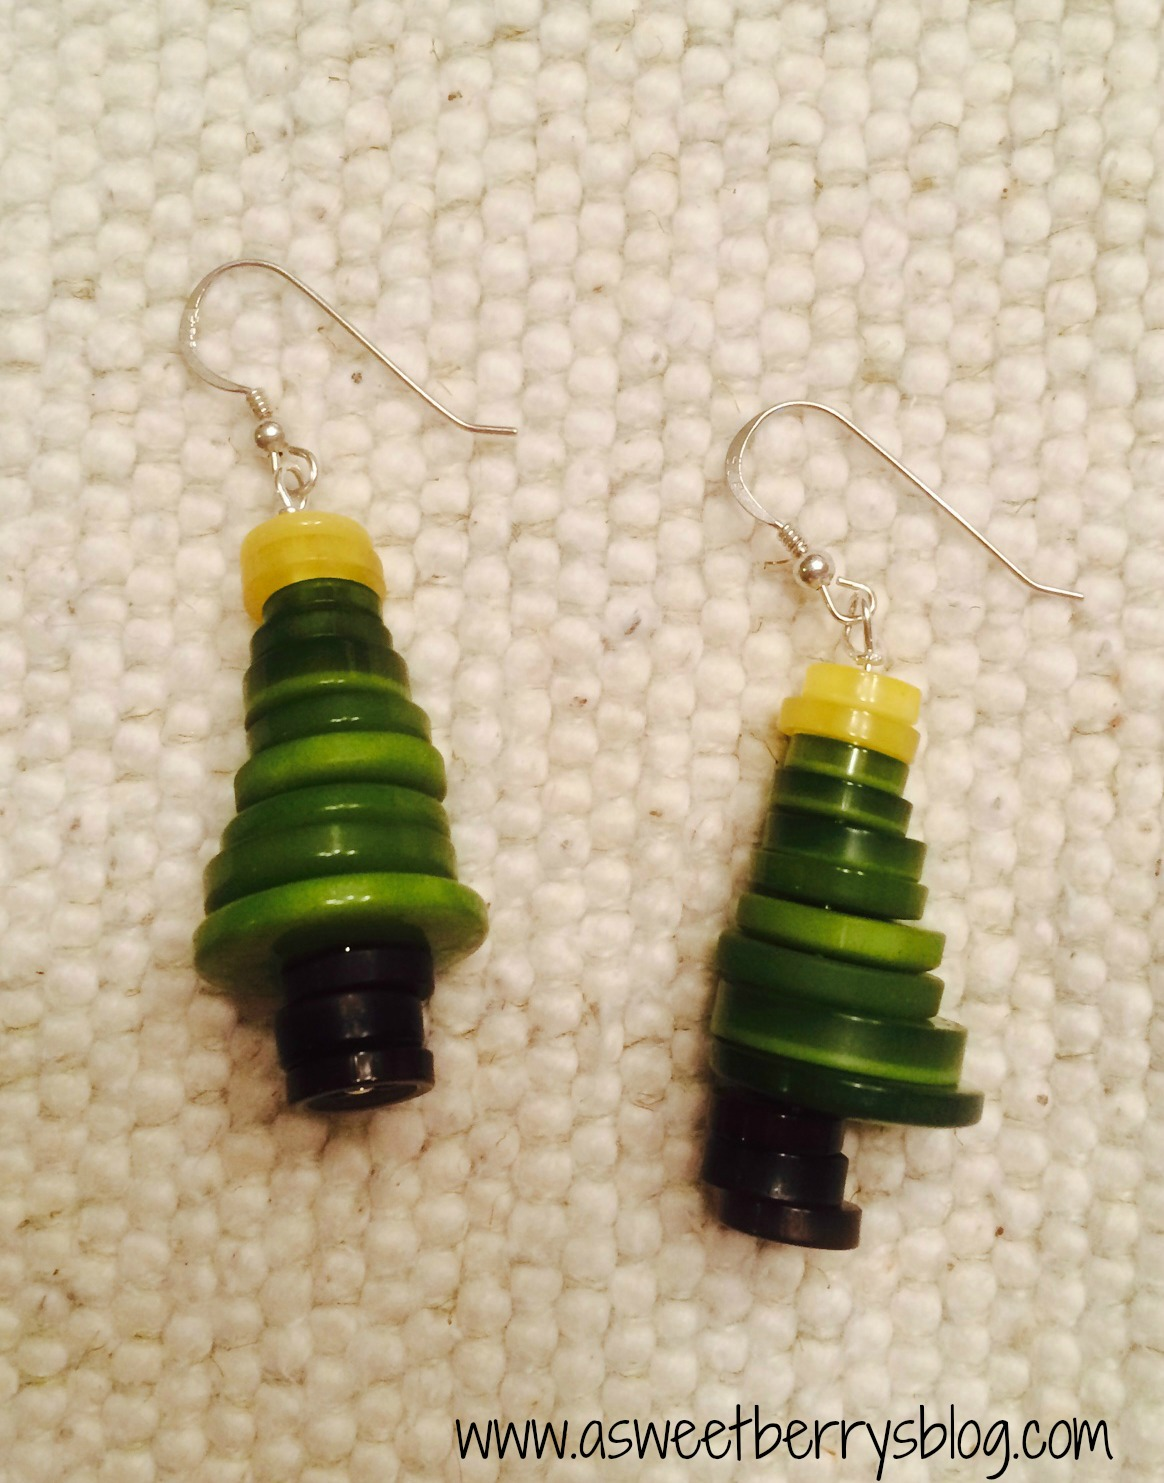 Button Christmas Tree Earrings A Sweet Berry's Blog - Make Christmas Tree Earrings